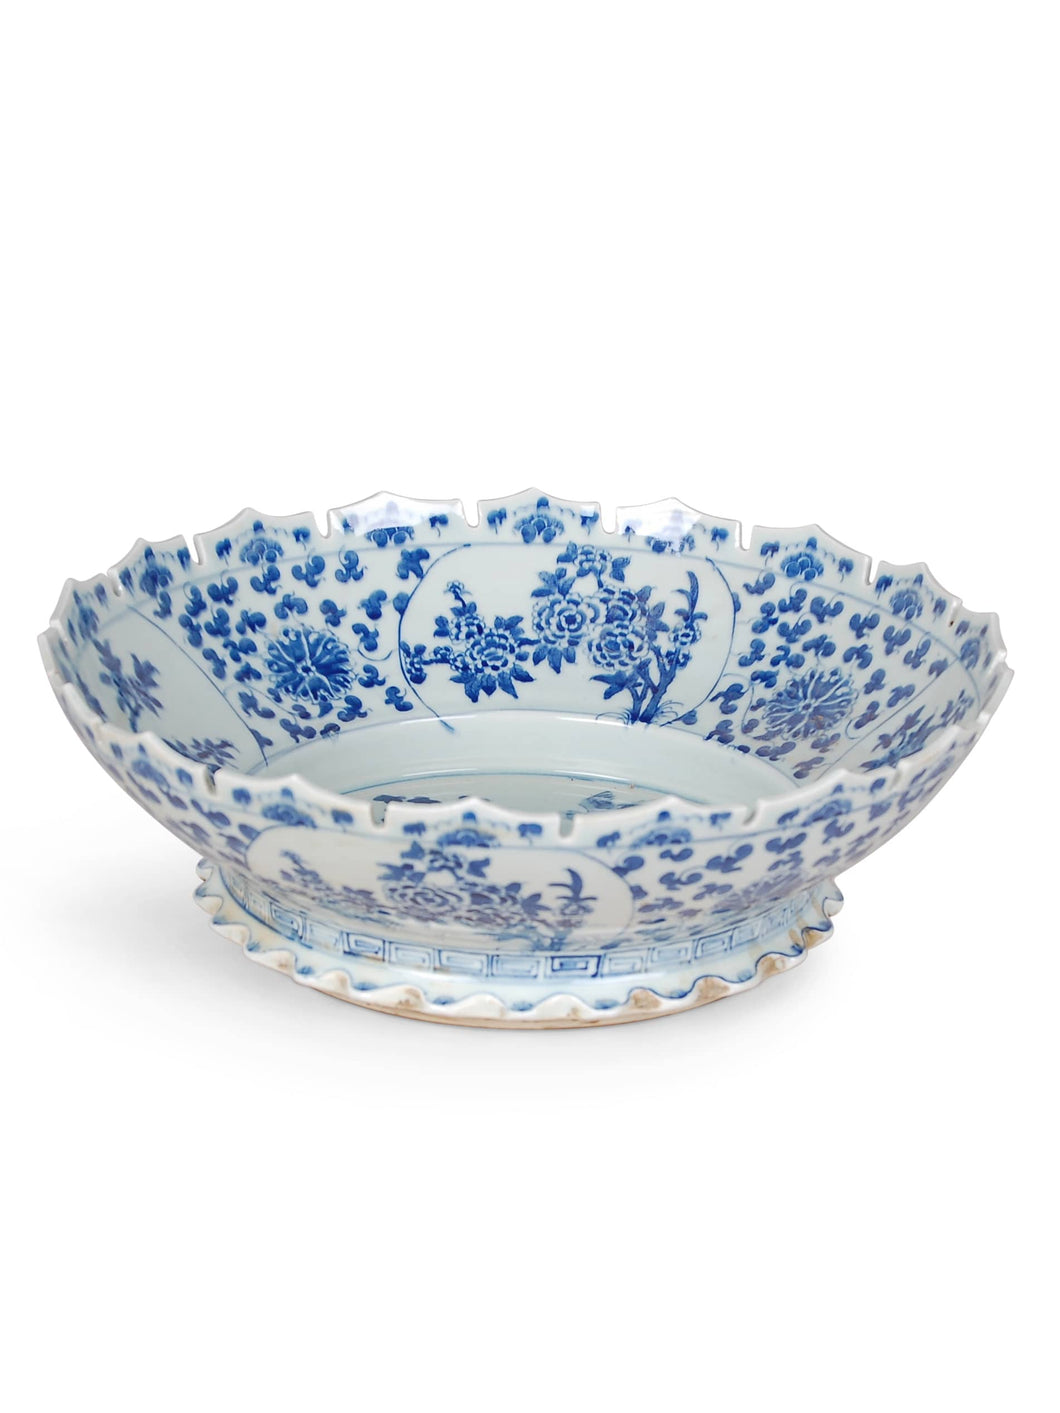 Blue and White Monteith Bowl